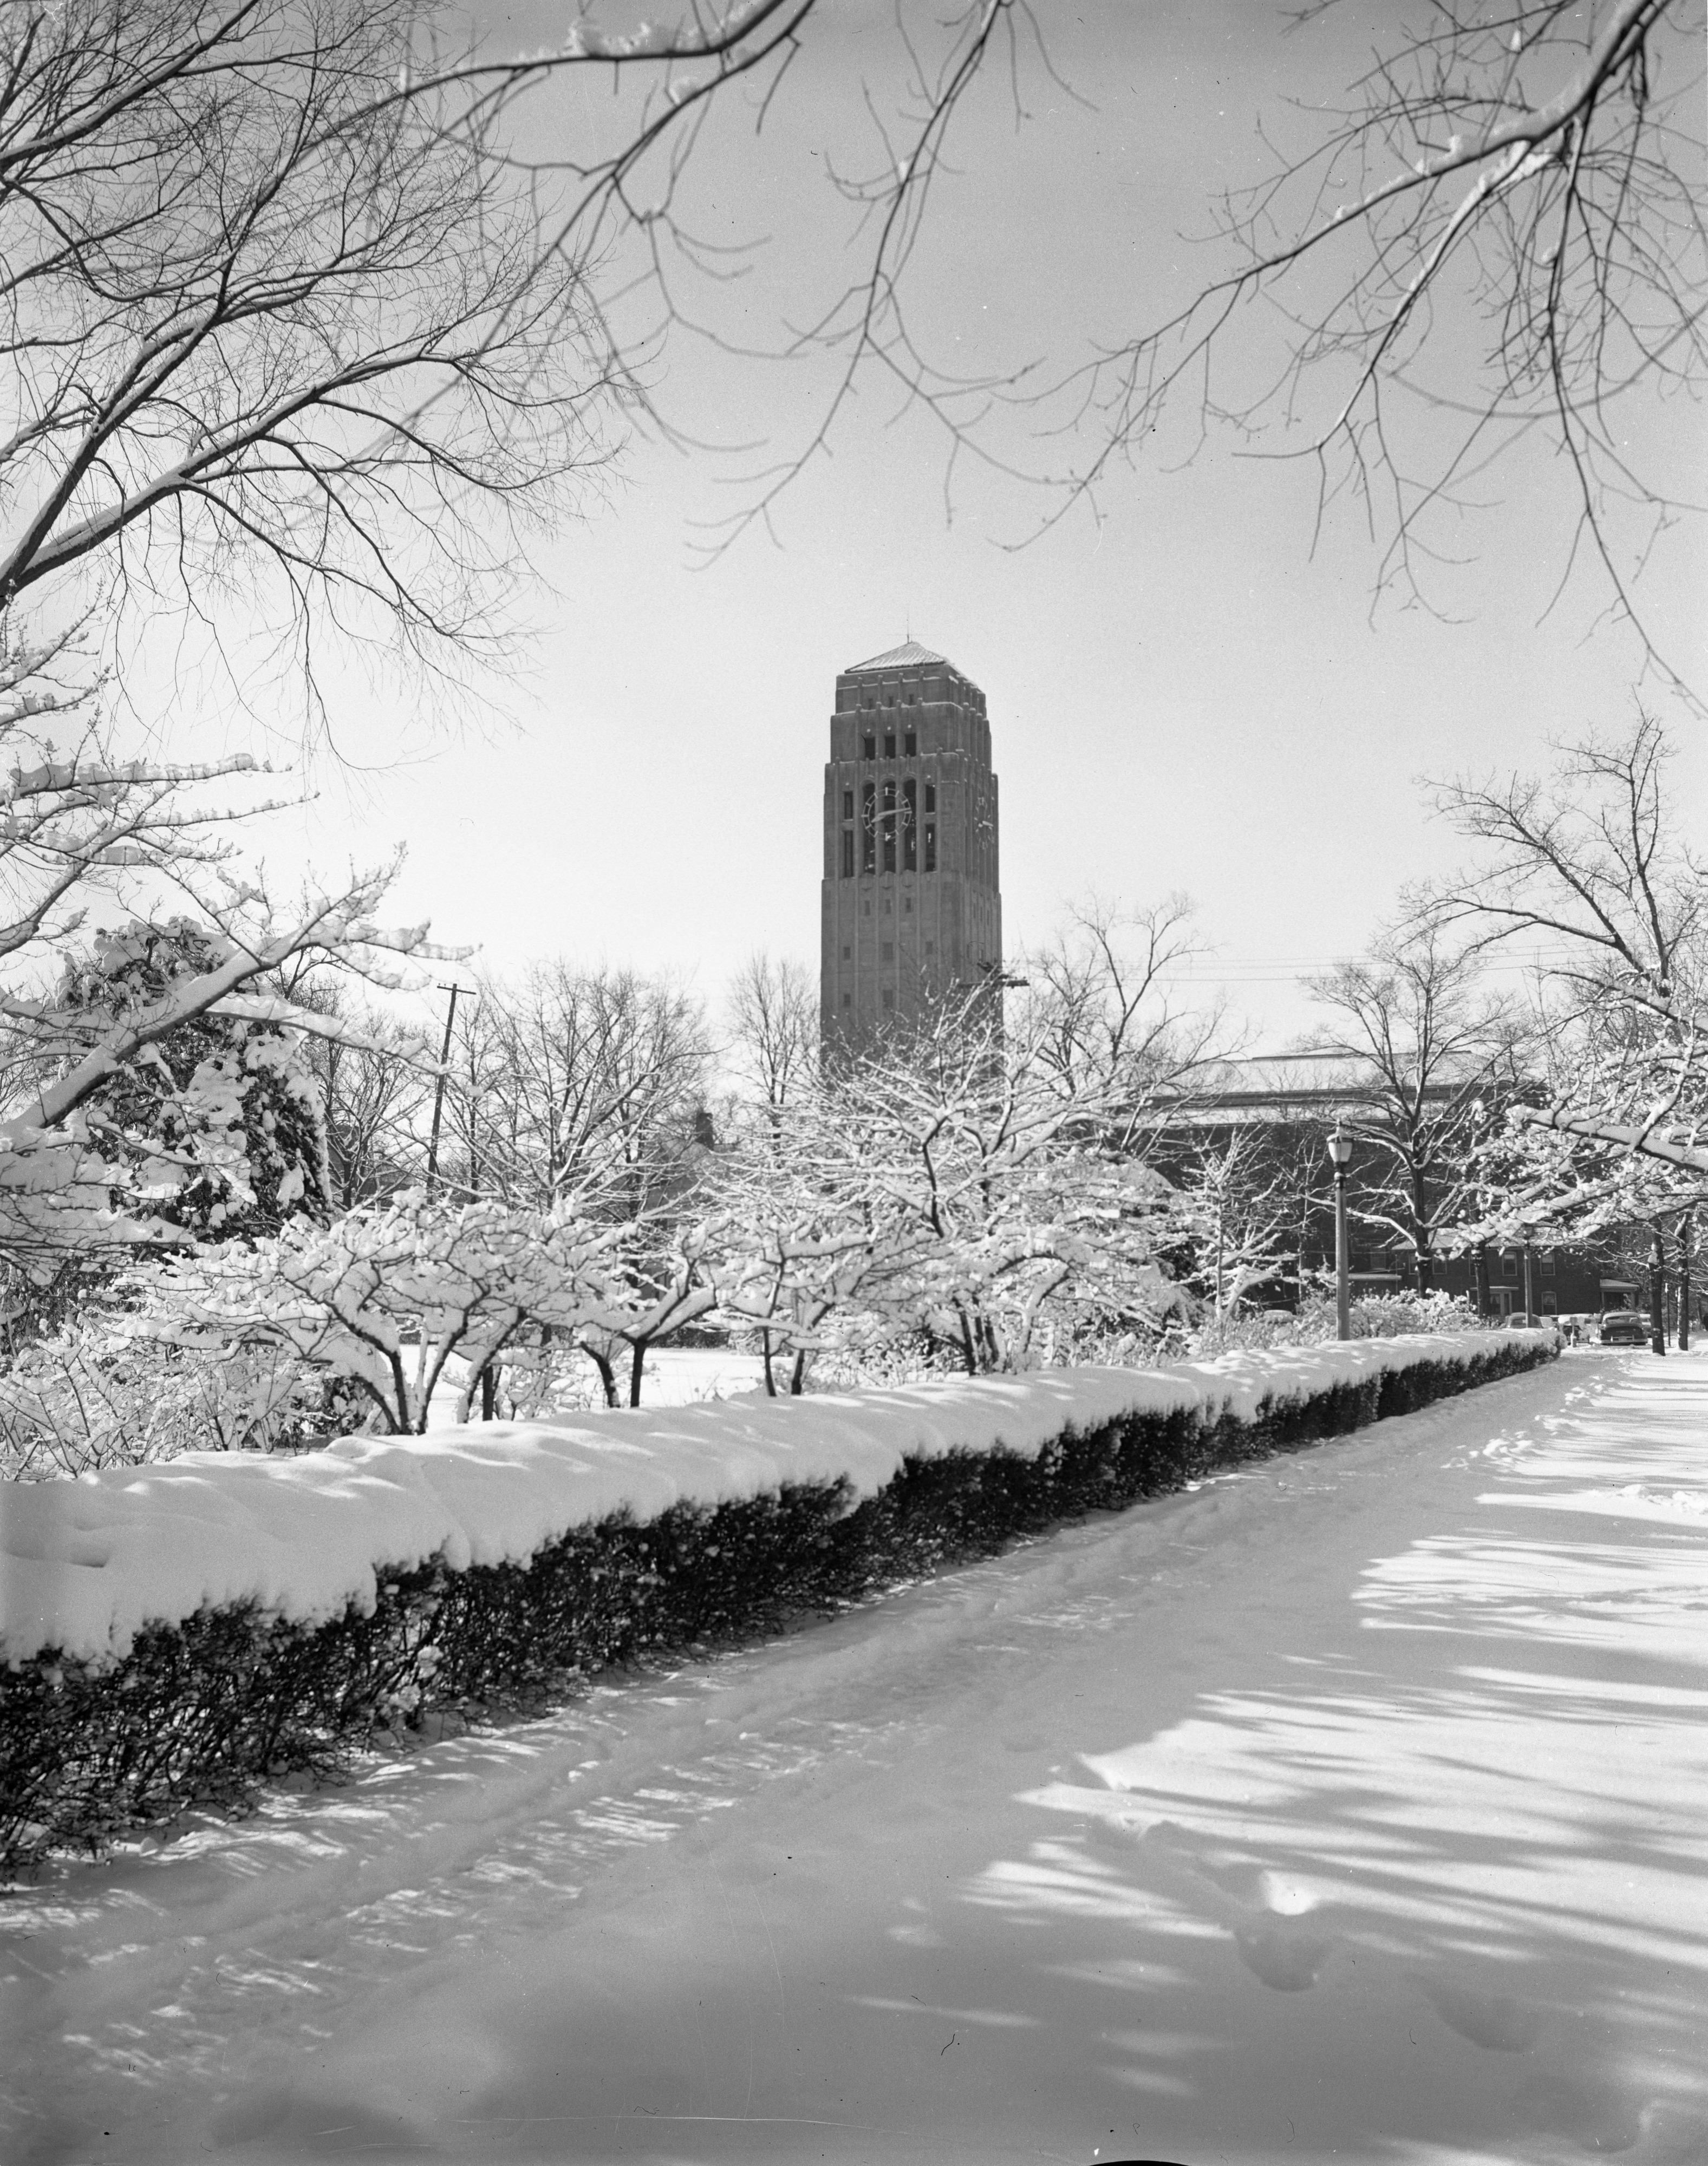 Burton Memorial Tower Overlooks A Snowy Campus, March 1956 image